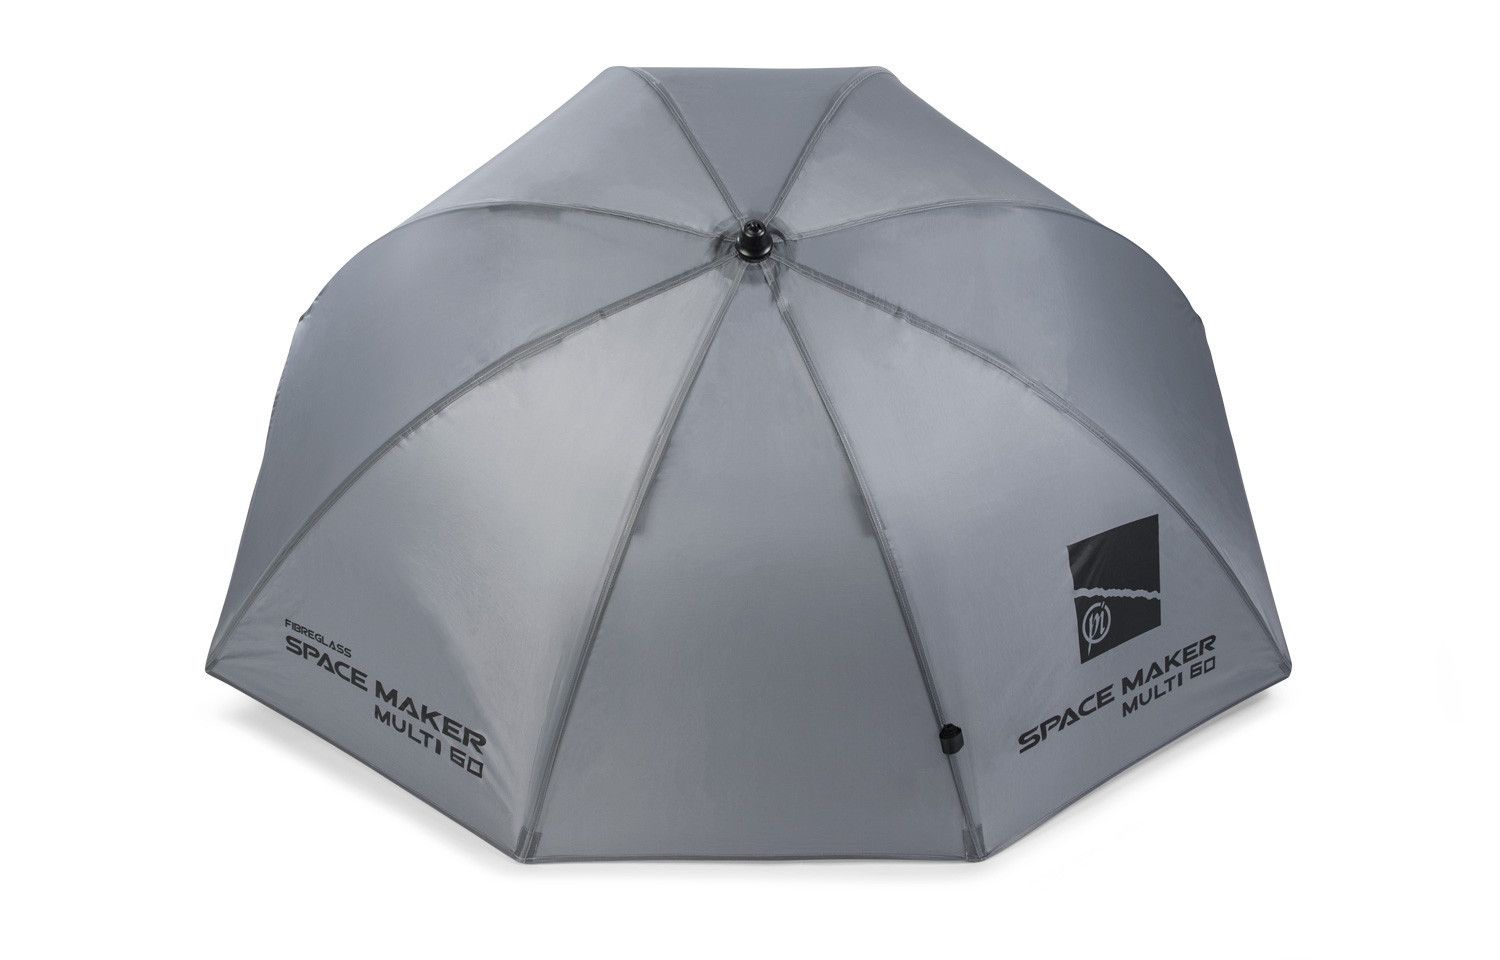 Preston Space Maker Multi 60' Brolly - Schirm